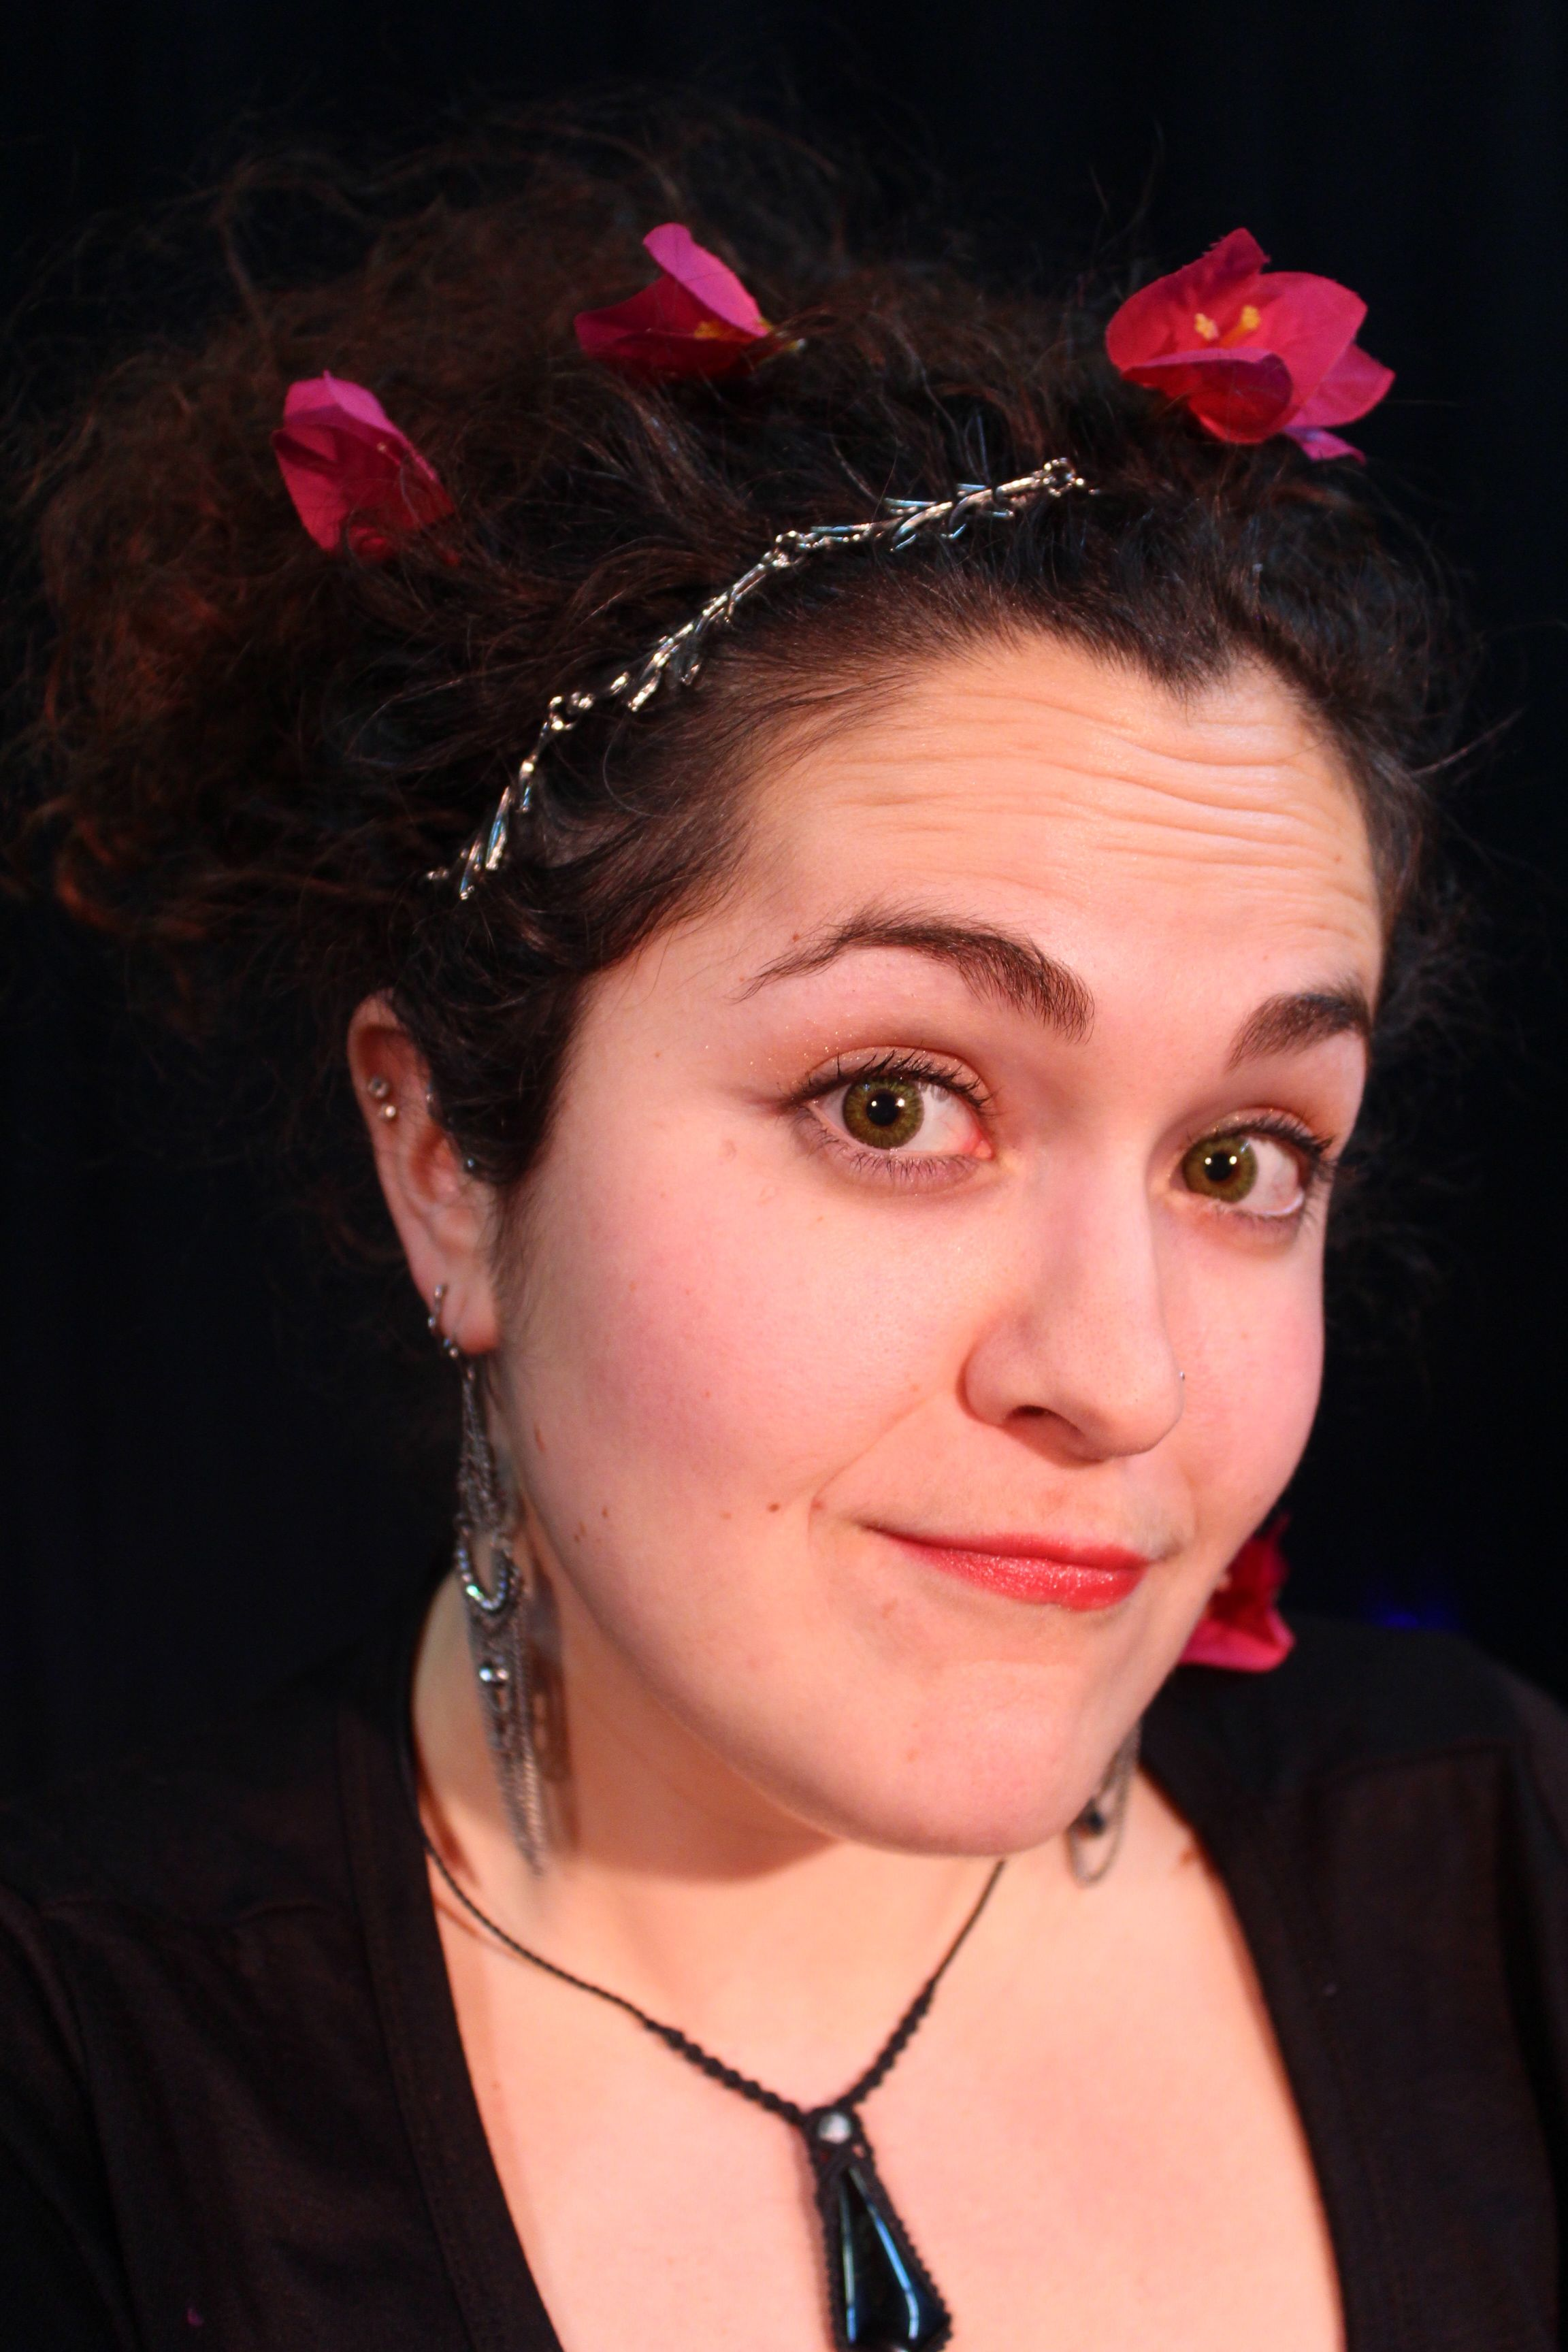 ERIN SLIMAK:  (An) is thrilled to be making her Denver theater debut here on the BiTSY Stage! You can also see her around town performing and being generally silly with the Third Kind Improv troupe. She received her degree in Theater Arts at Loyola University New Orleans in 2008 and has been traveling the world making art since then. Favorite roles of hers include Pozzo ( WAITING FOR GODOT ), Maria ( TWELFTH NIGH T), May ( TIME FLIES ) and Maude Adams ( TWAIN'S TALES OF TAHOE ). She would like to thank the cast and crew for making this such a fun experience, and congratulate the BiTSY Stage for having such a fabulously magical beginning!